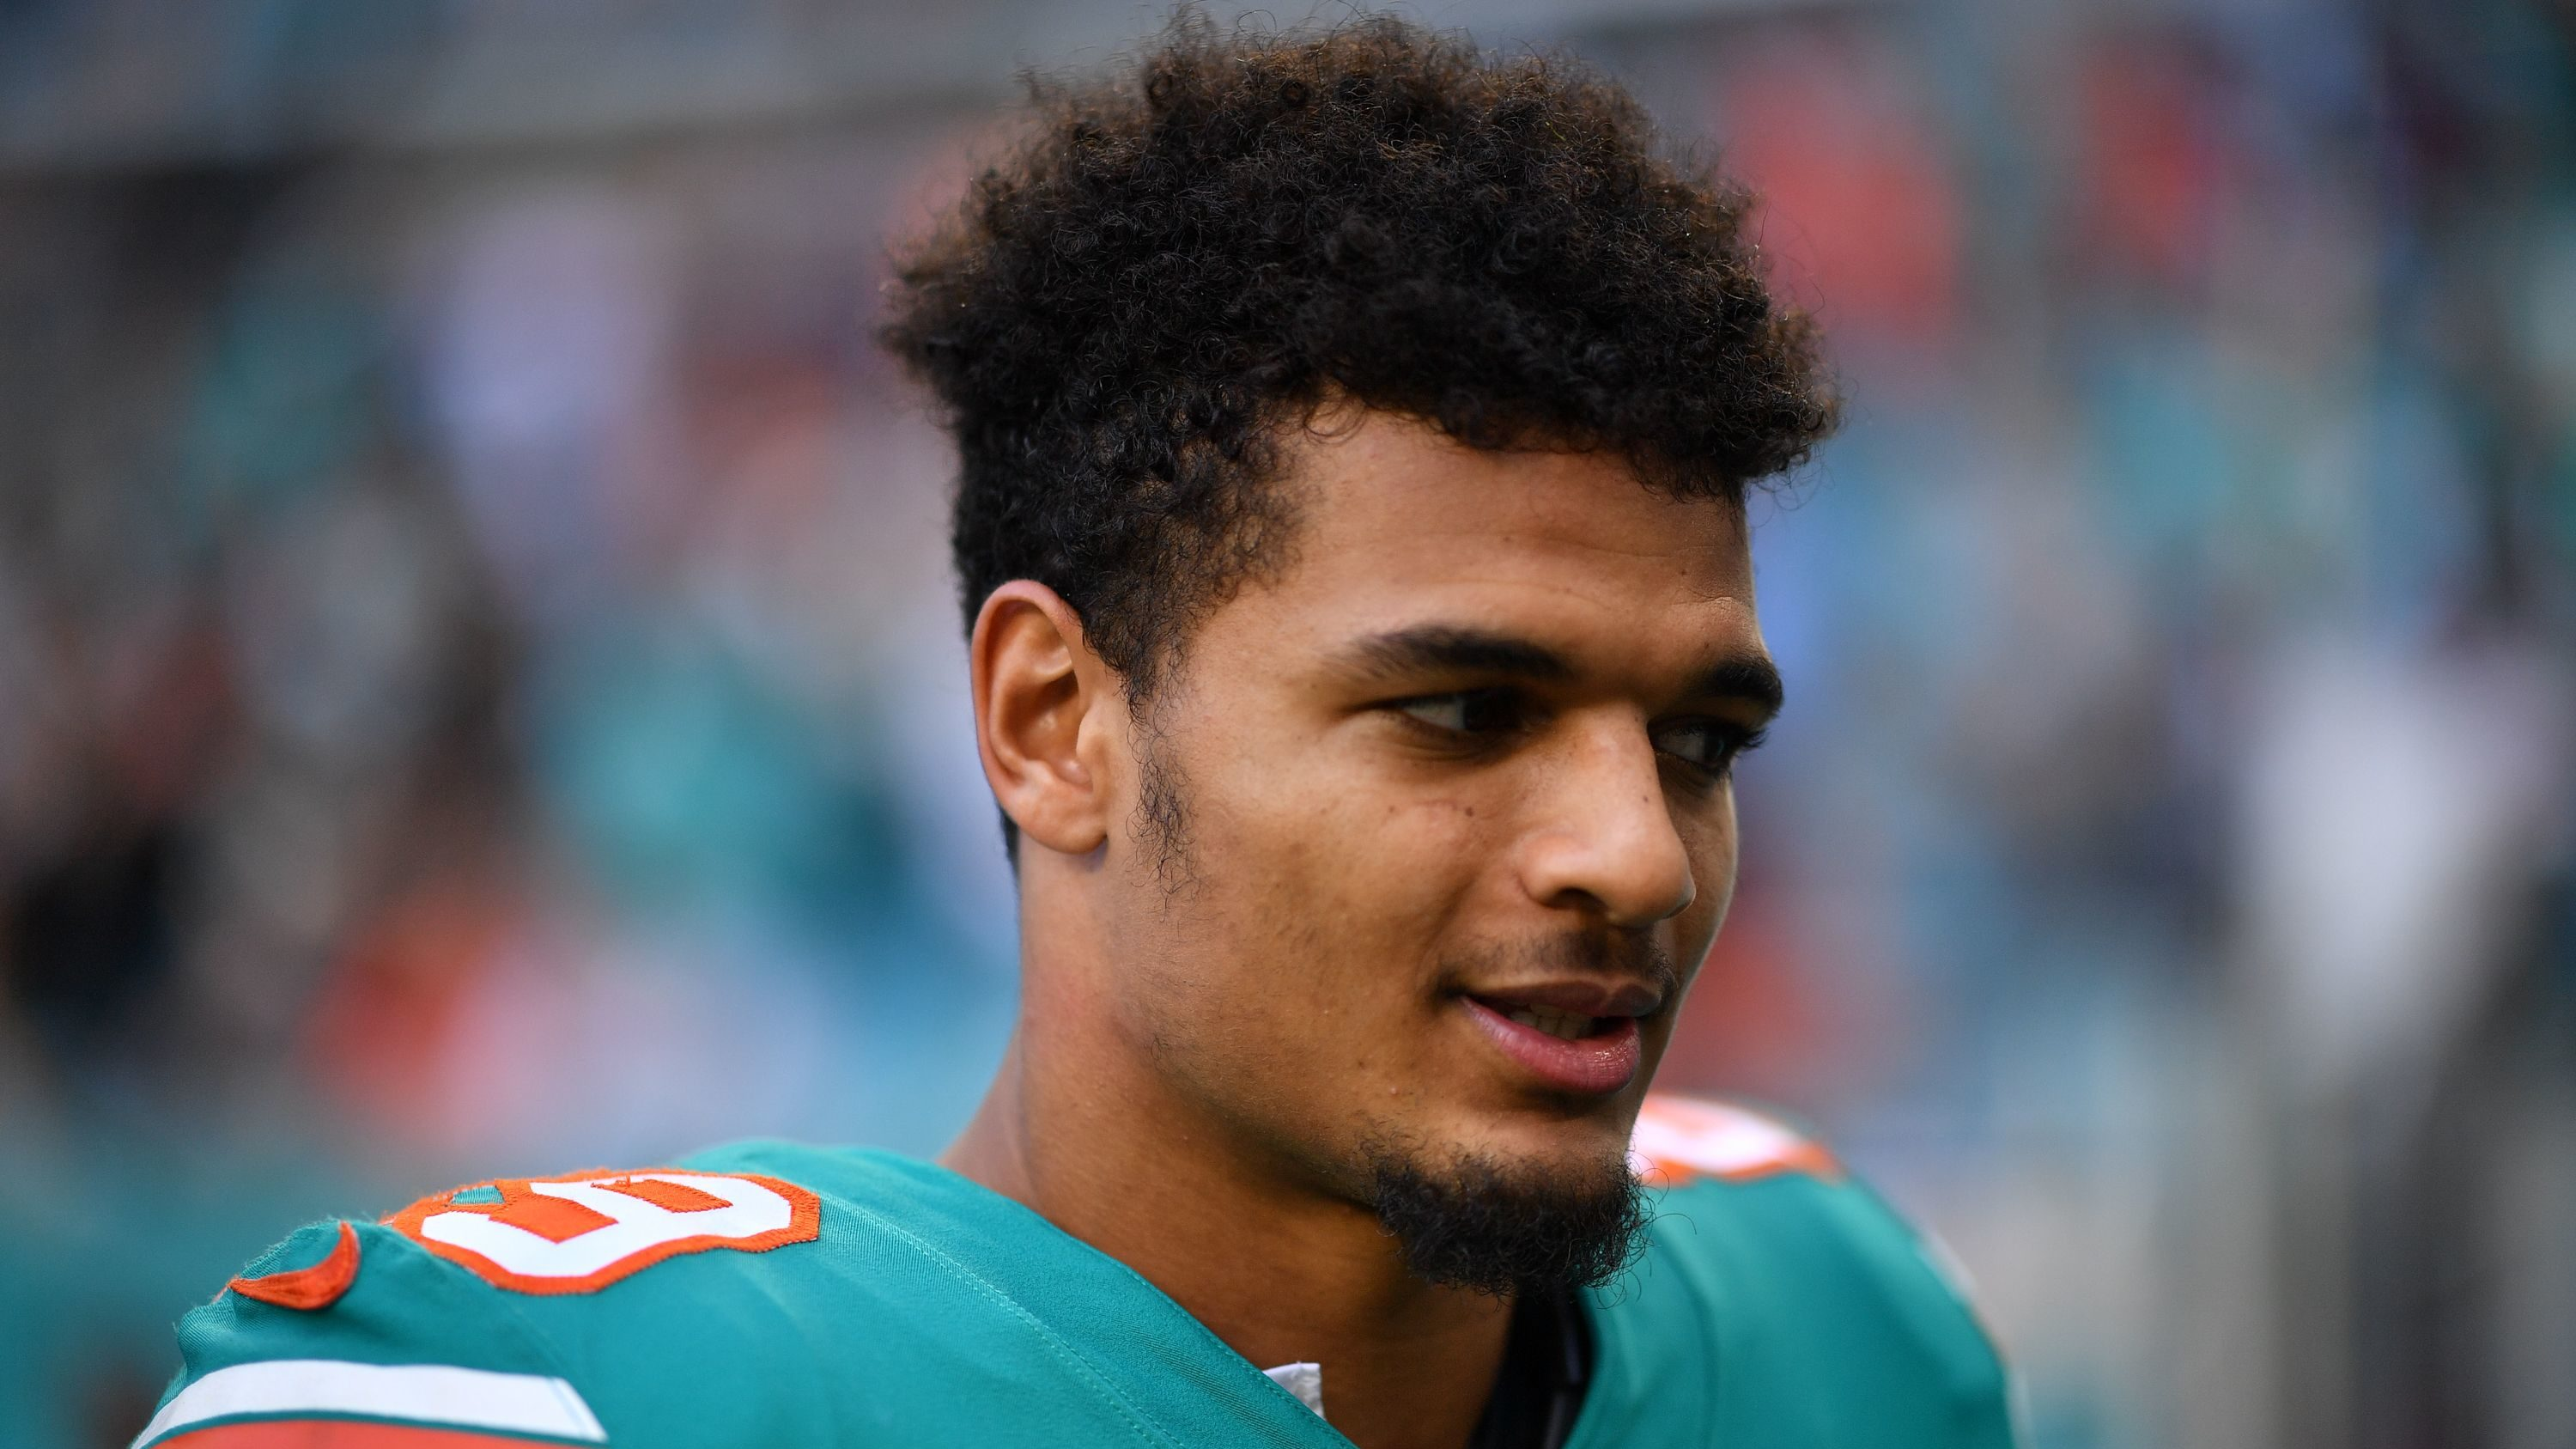 NFL Pittsburgh Steelers Minkah Fitzpatrick Trade Deal 2020 Draft Picks